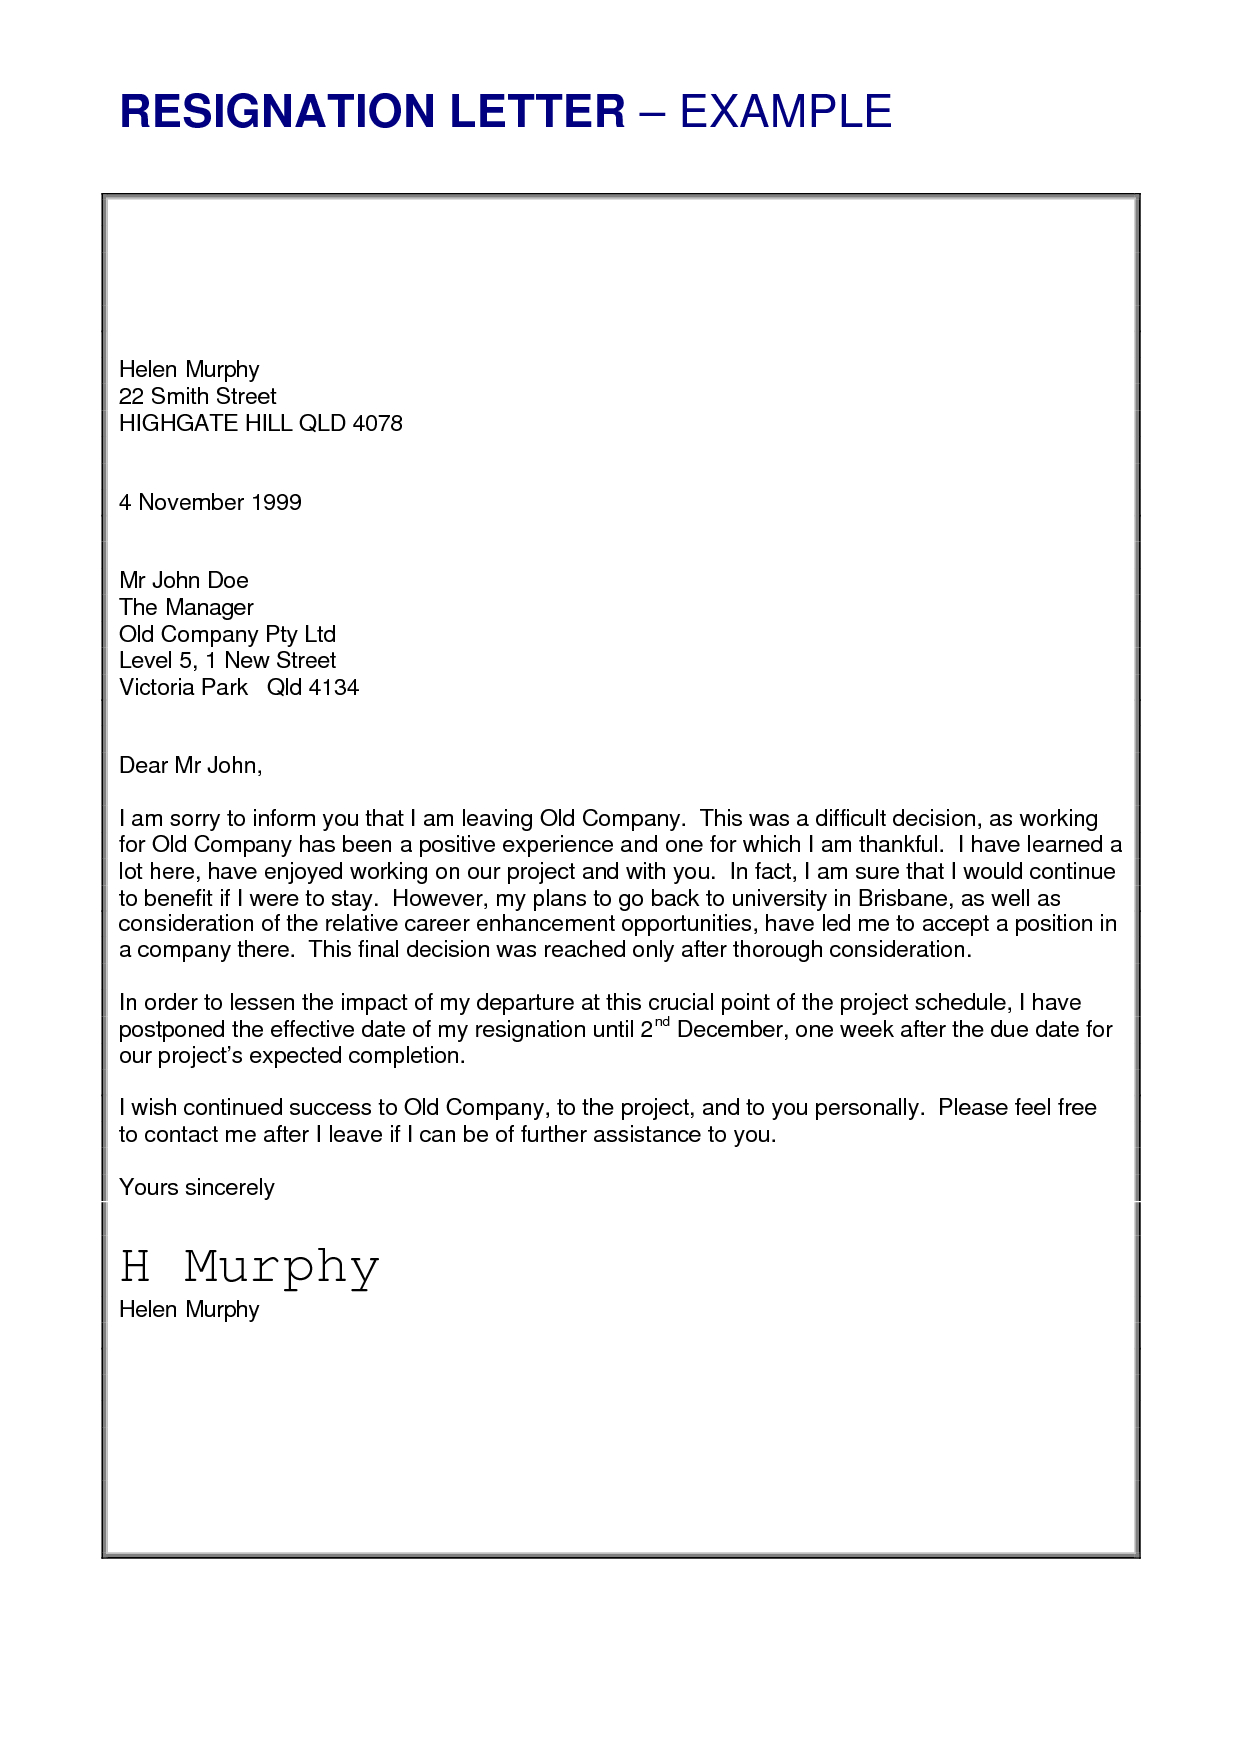 Resignation Letter Template Free Download - Job Resignation Letter Sample Loganun Blog Job